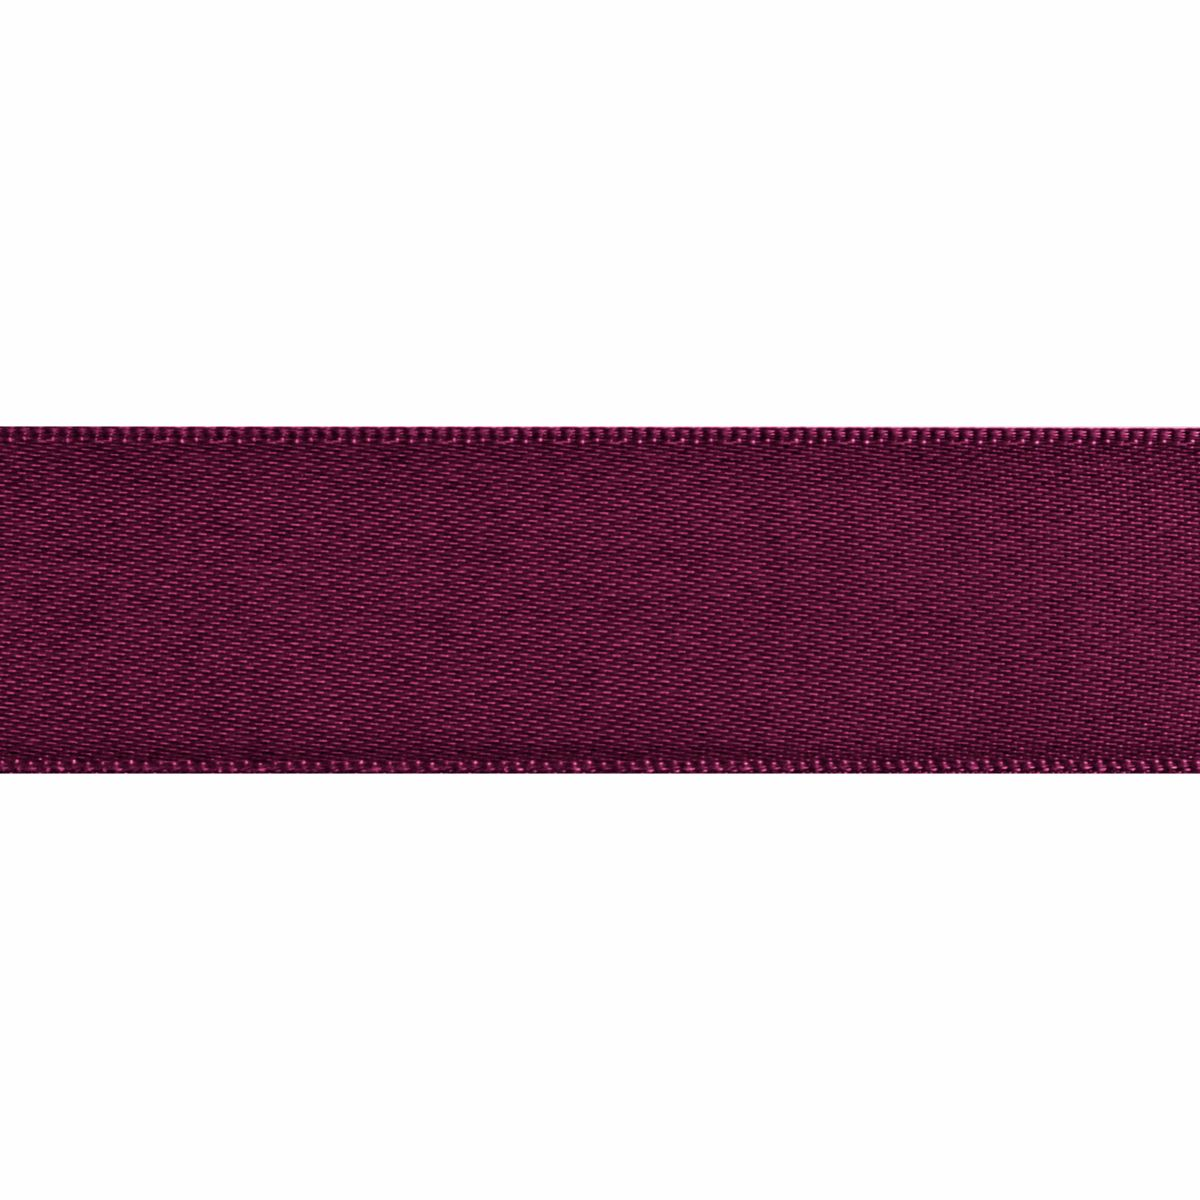 Wine Double Satin Ribbon 5m rolls from 3mm to 36mm wide